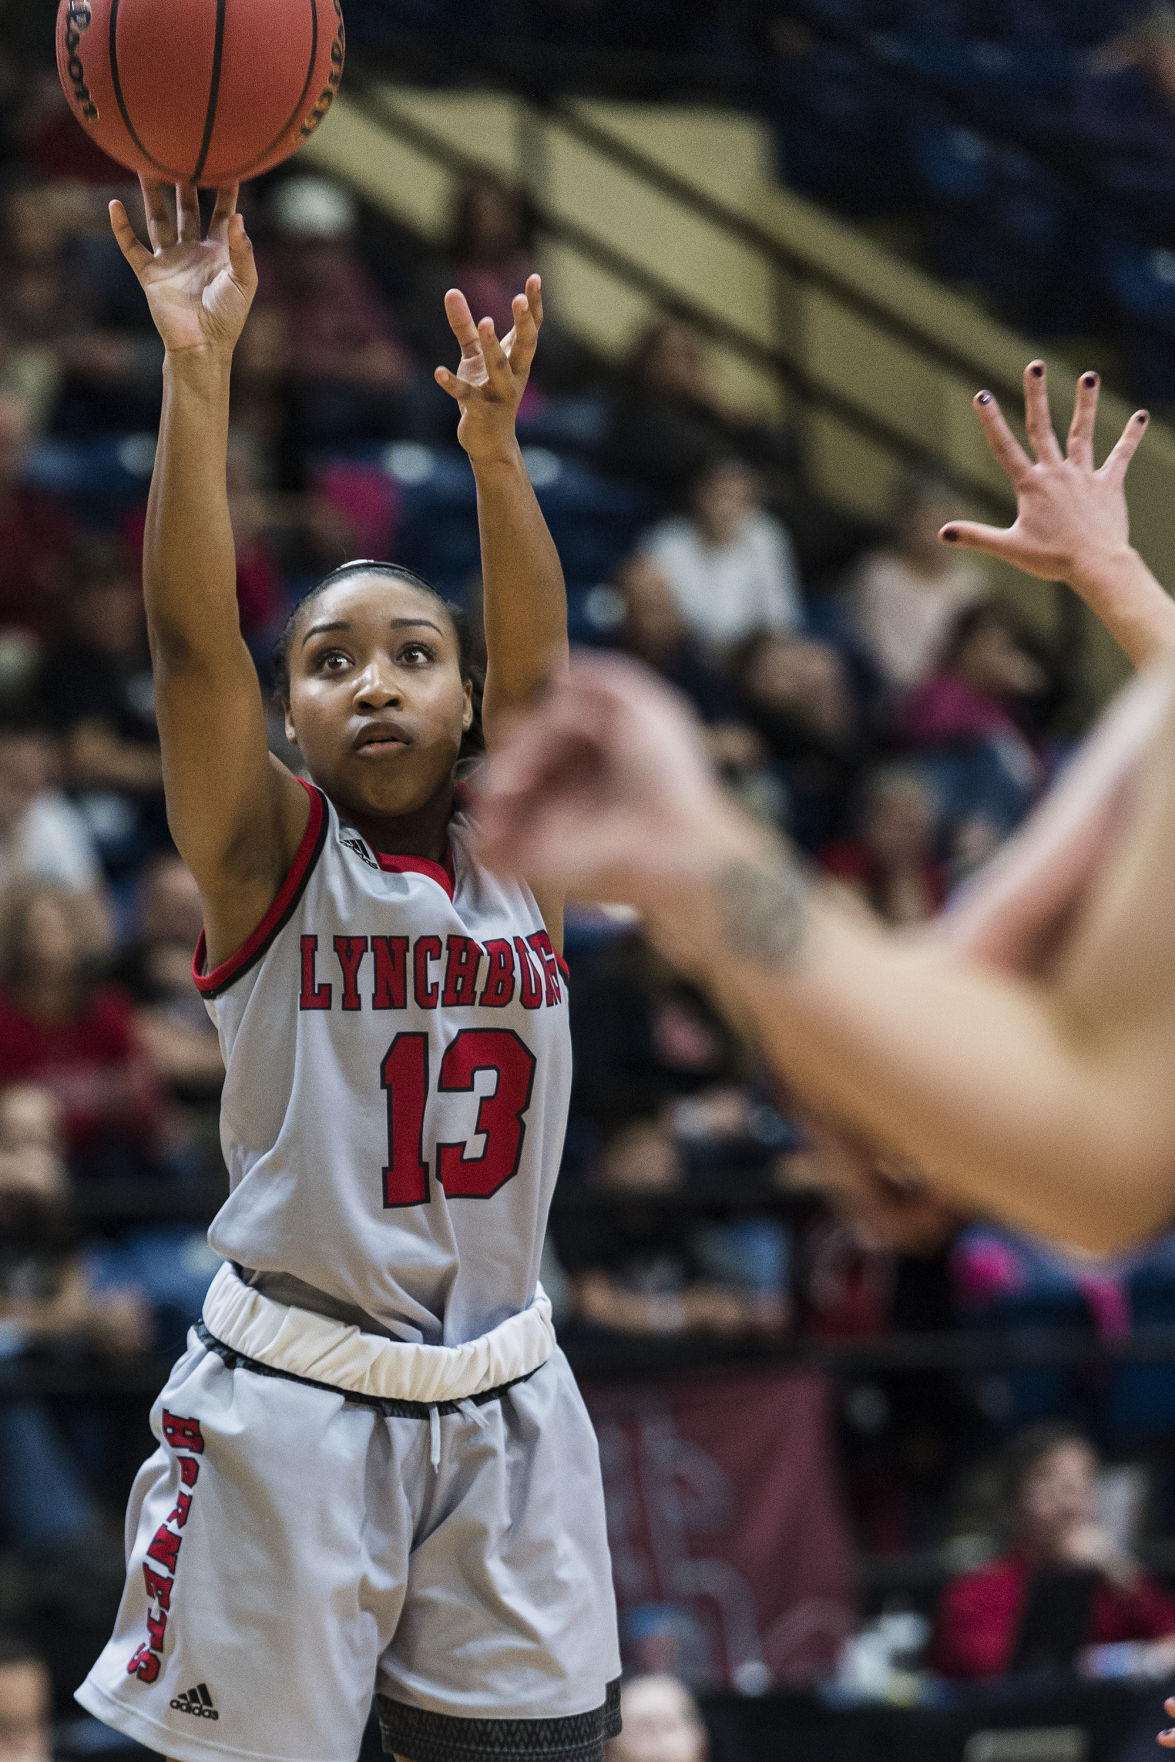 Hairston finds happiness at Lynchburg College